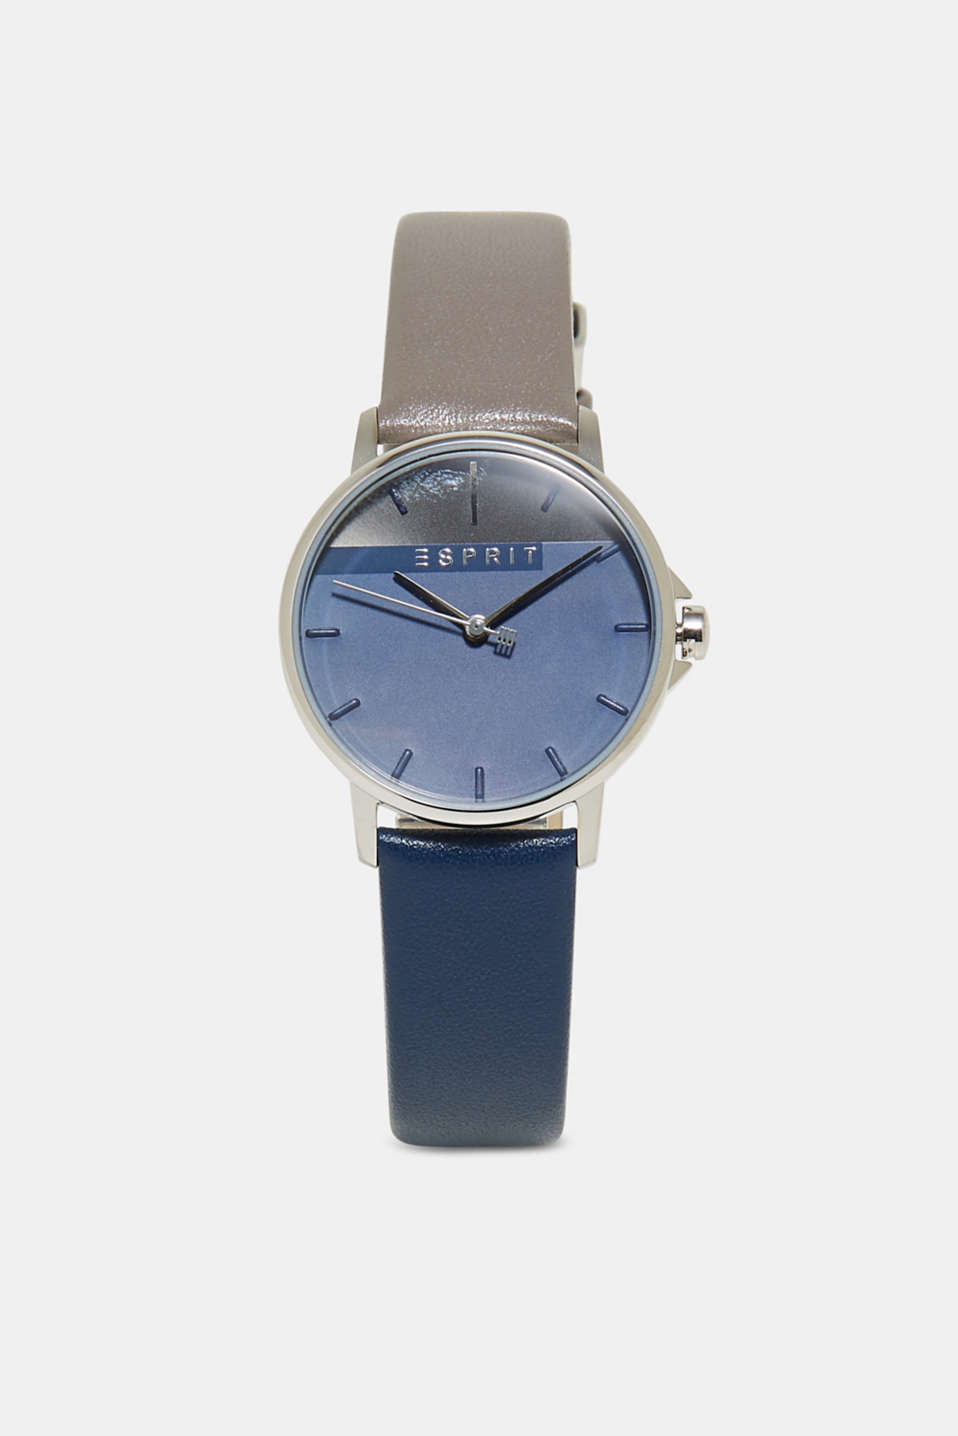 Esprit - Colour block watch with a leather strap